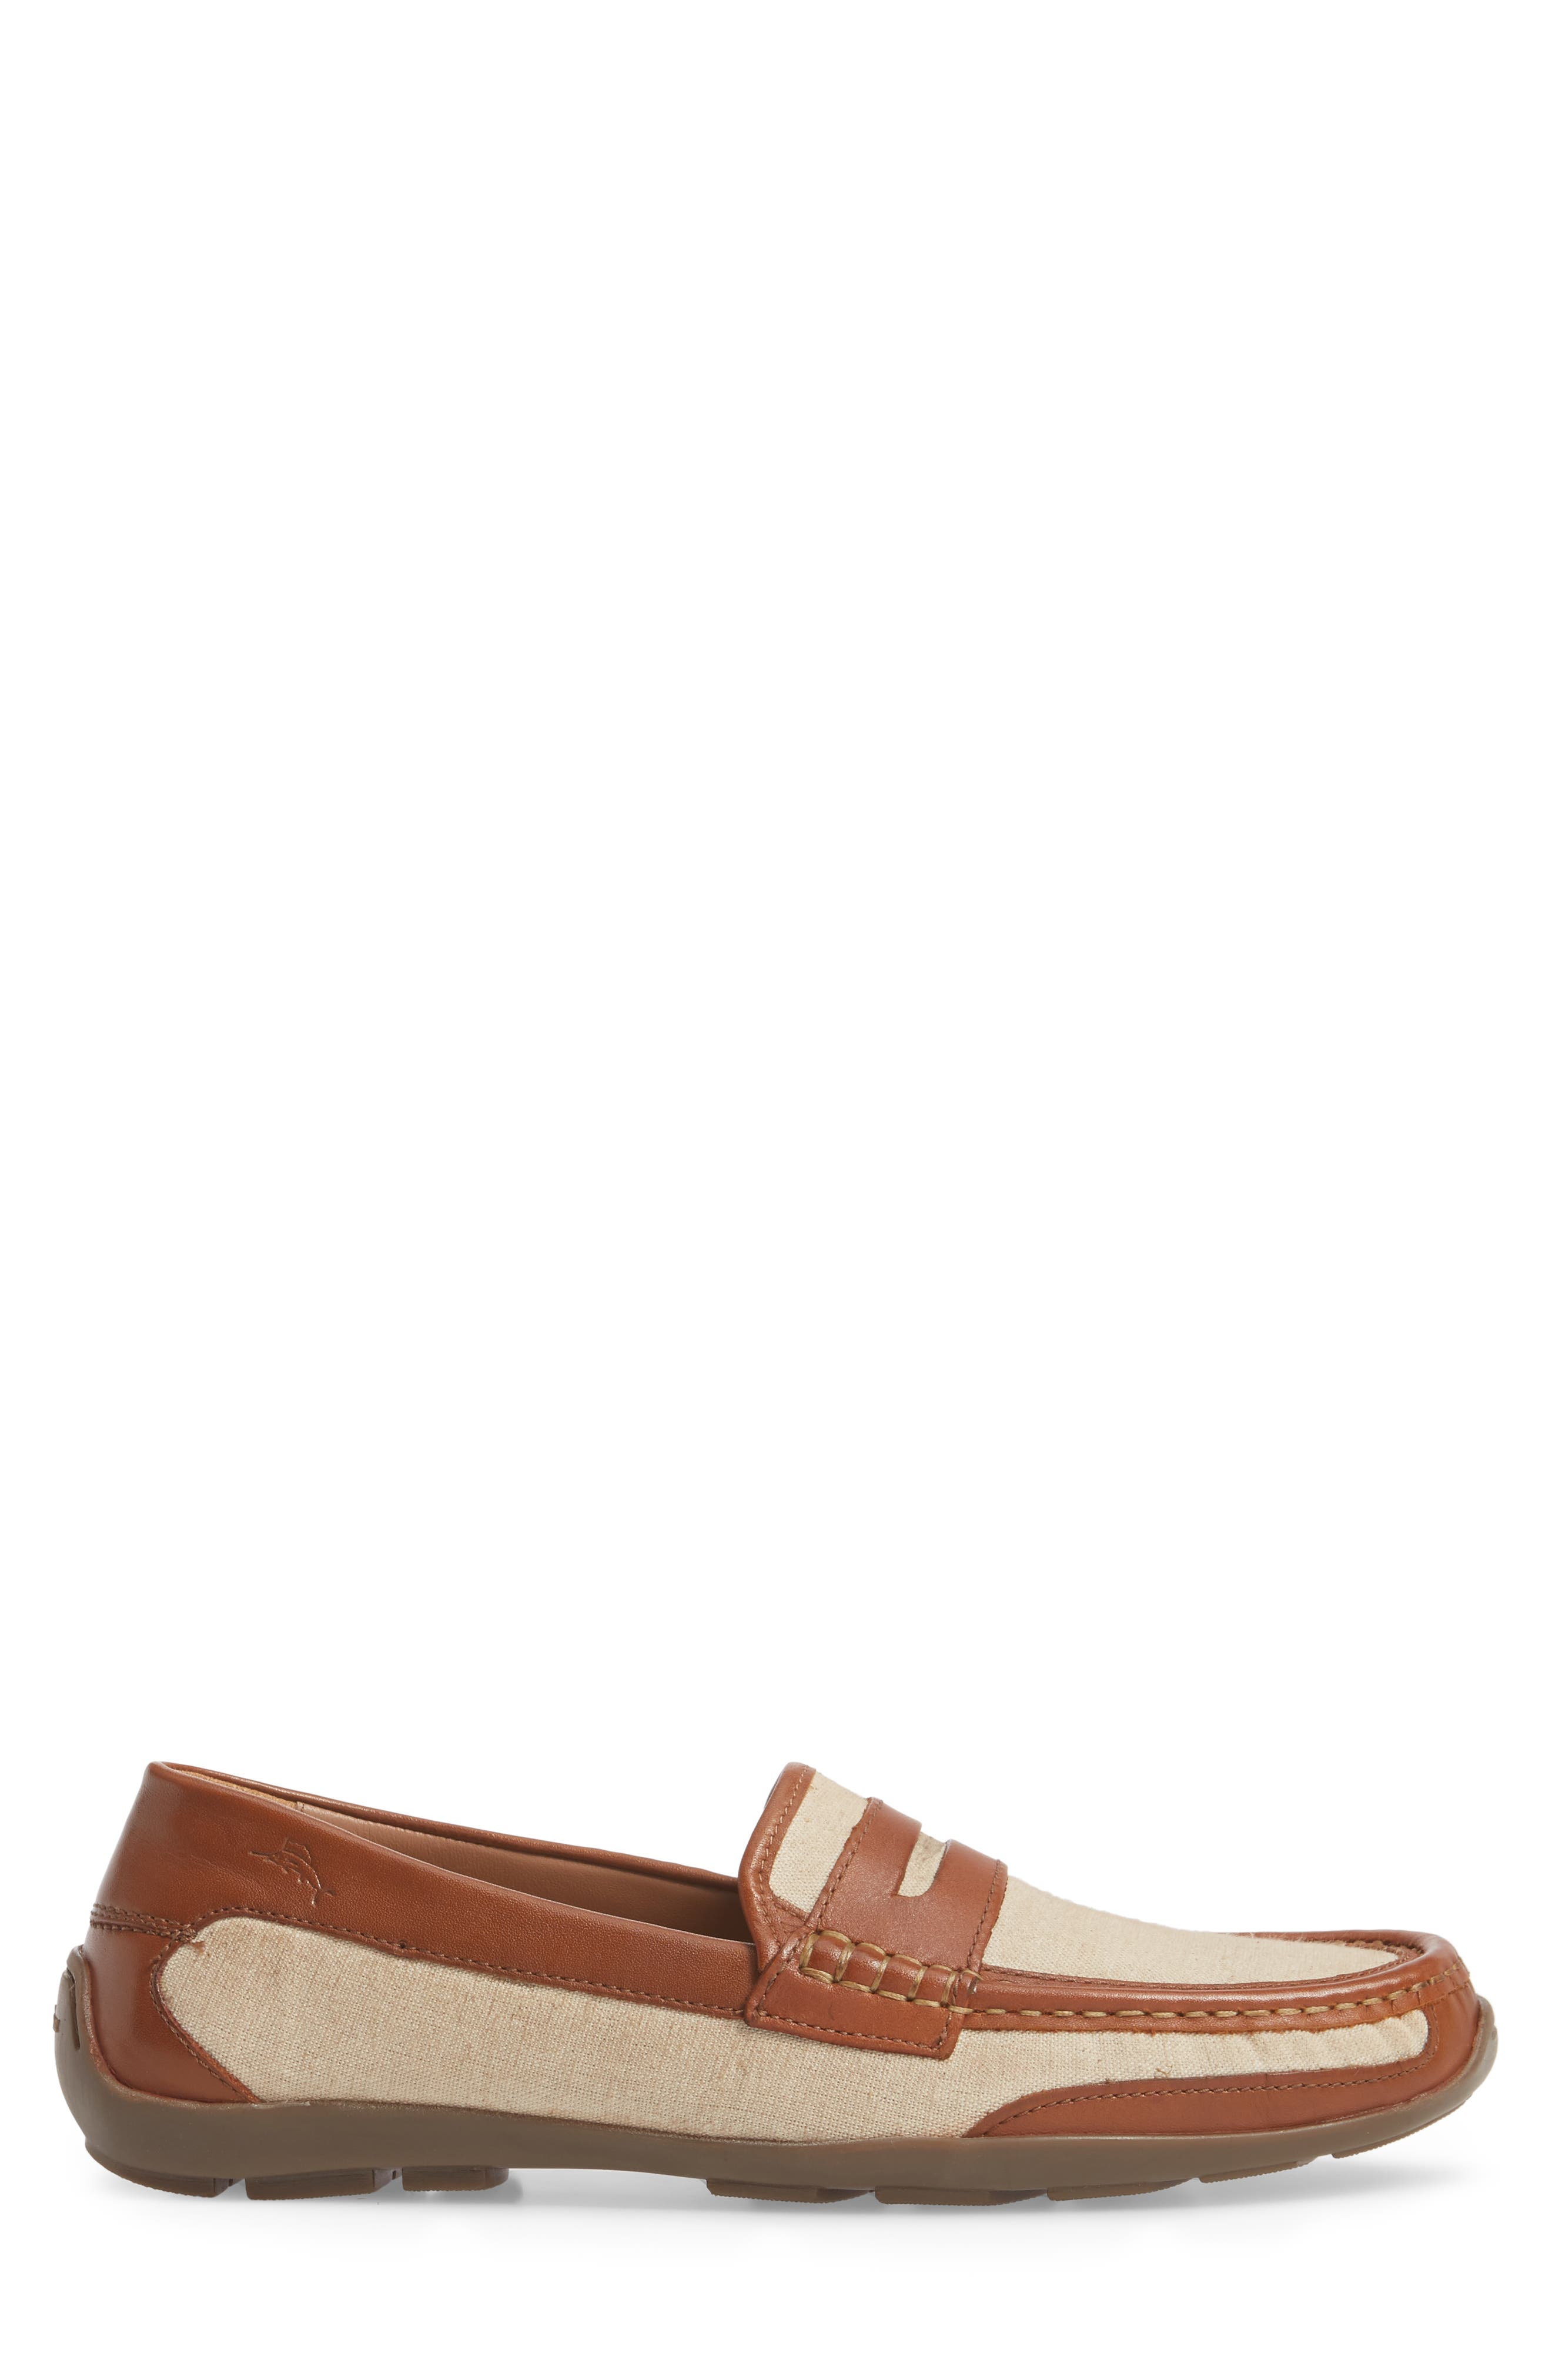 Taza Fronds Driving Shoe,                             Alternate thumbnail 3, color,                             BROWN/ NATURAL LEATHER/ LINEN